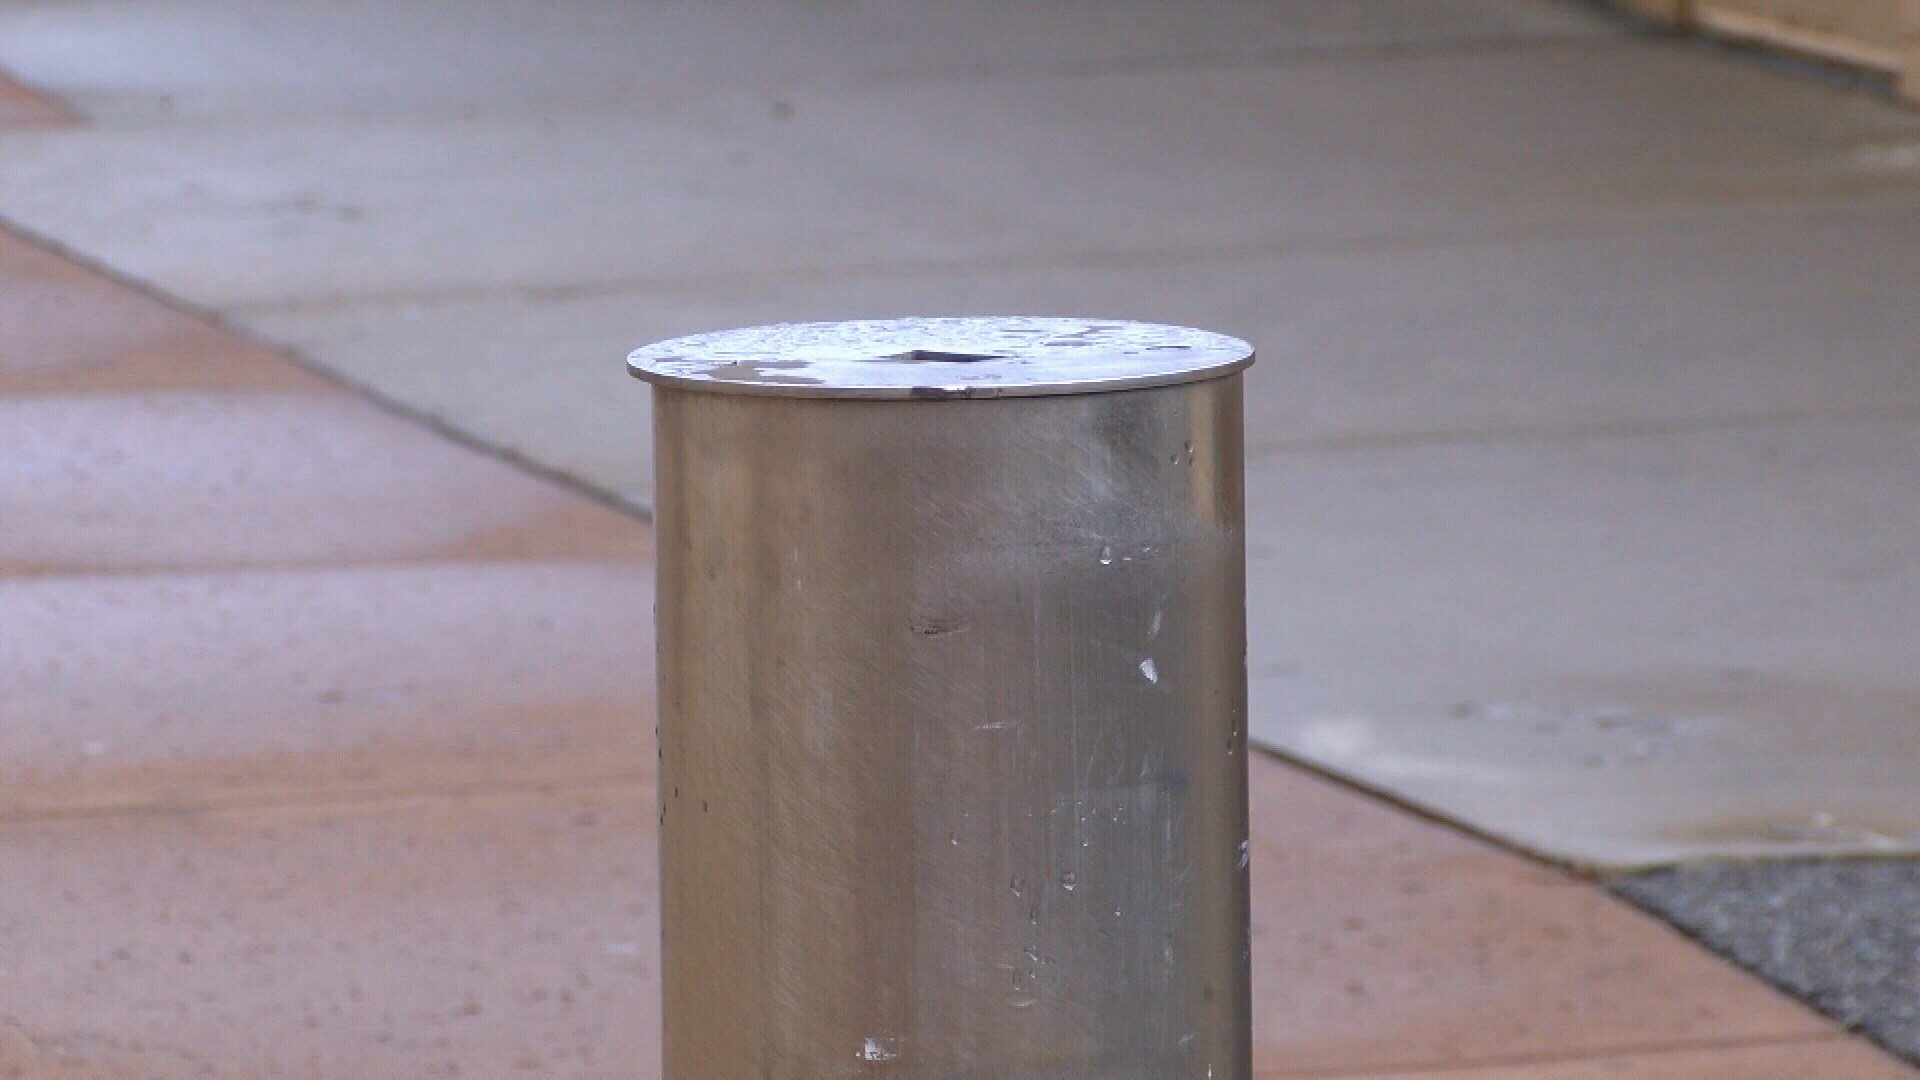 City Council unanimously approved a plan to install bollards in downtown San Luis Obispo. (KSBY photo)